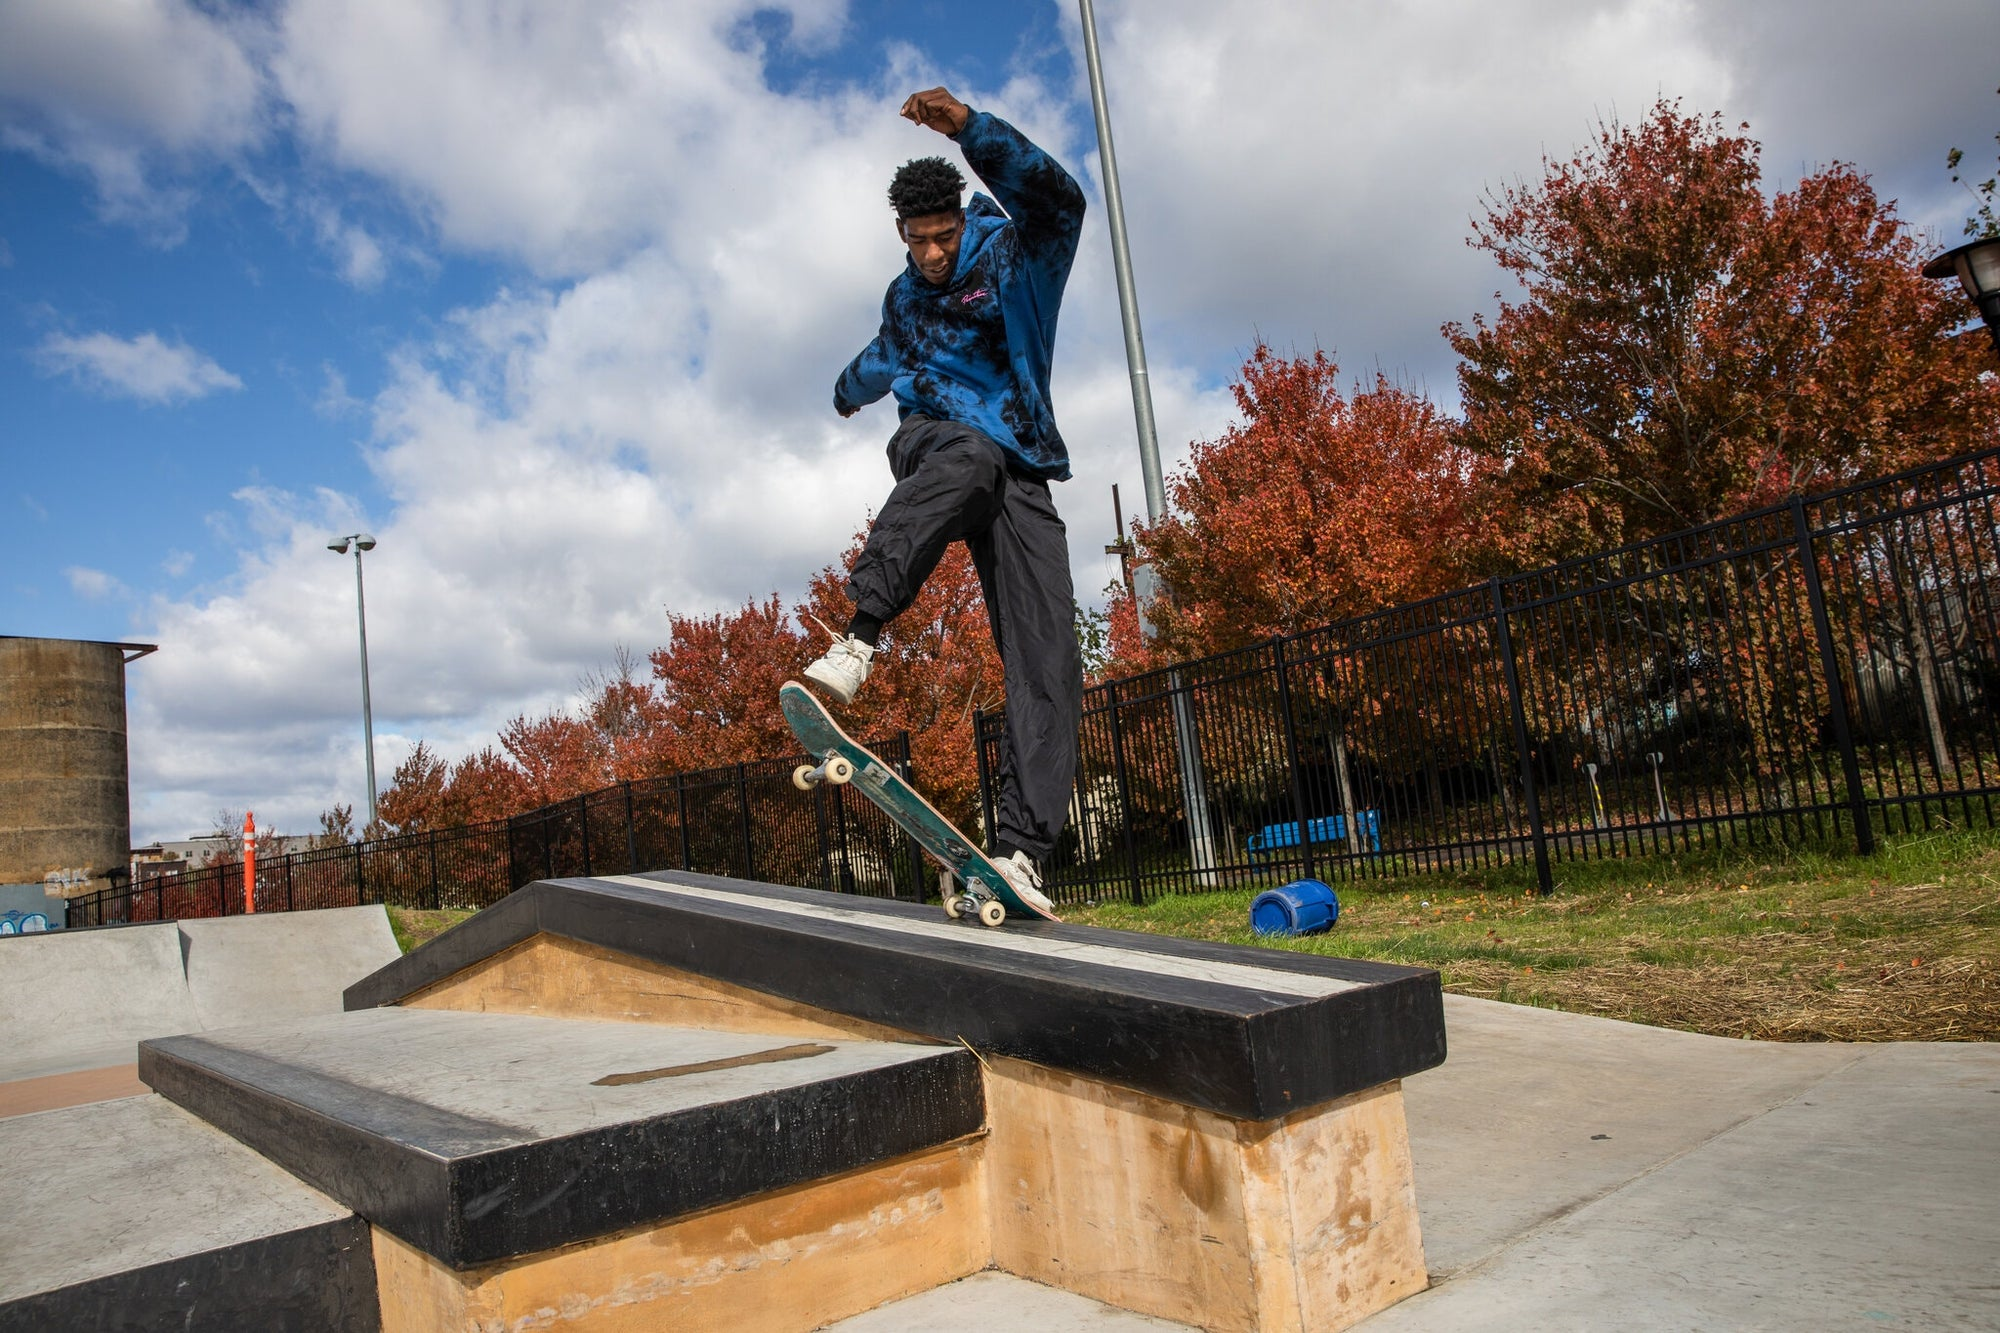 Xavier Harris uses skateboarding to fight depression growing up! Shares his story with the NY Times